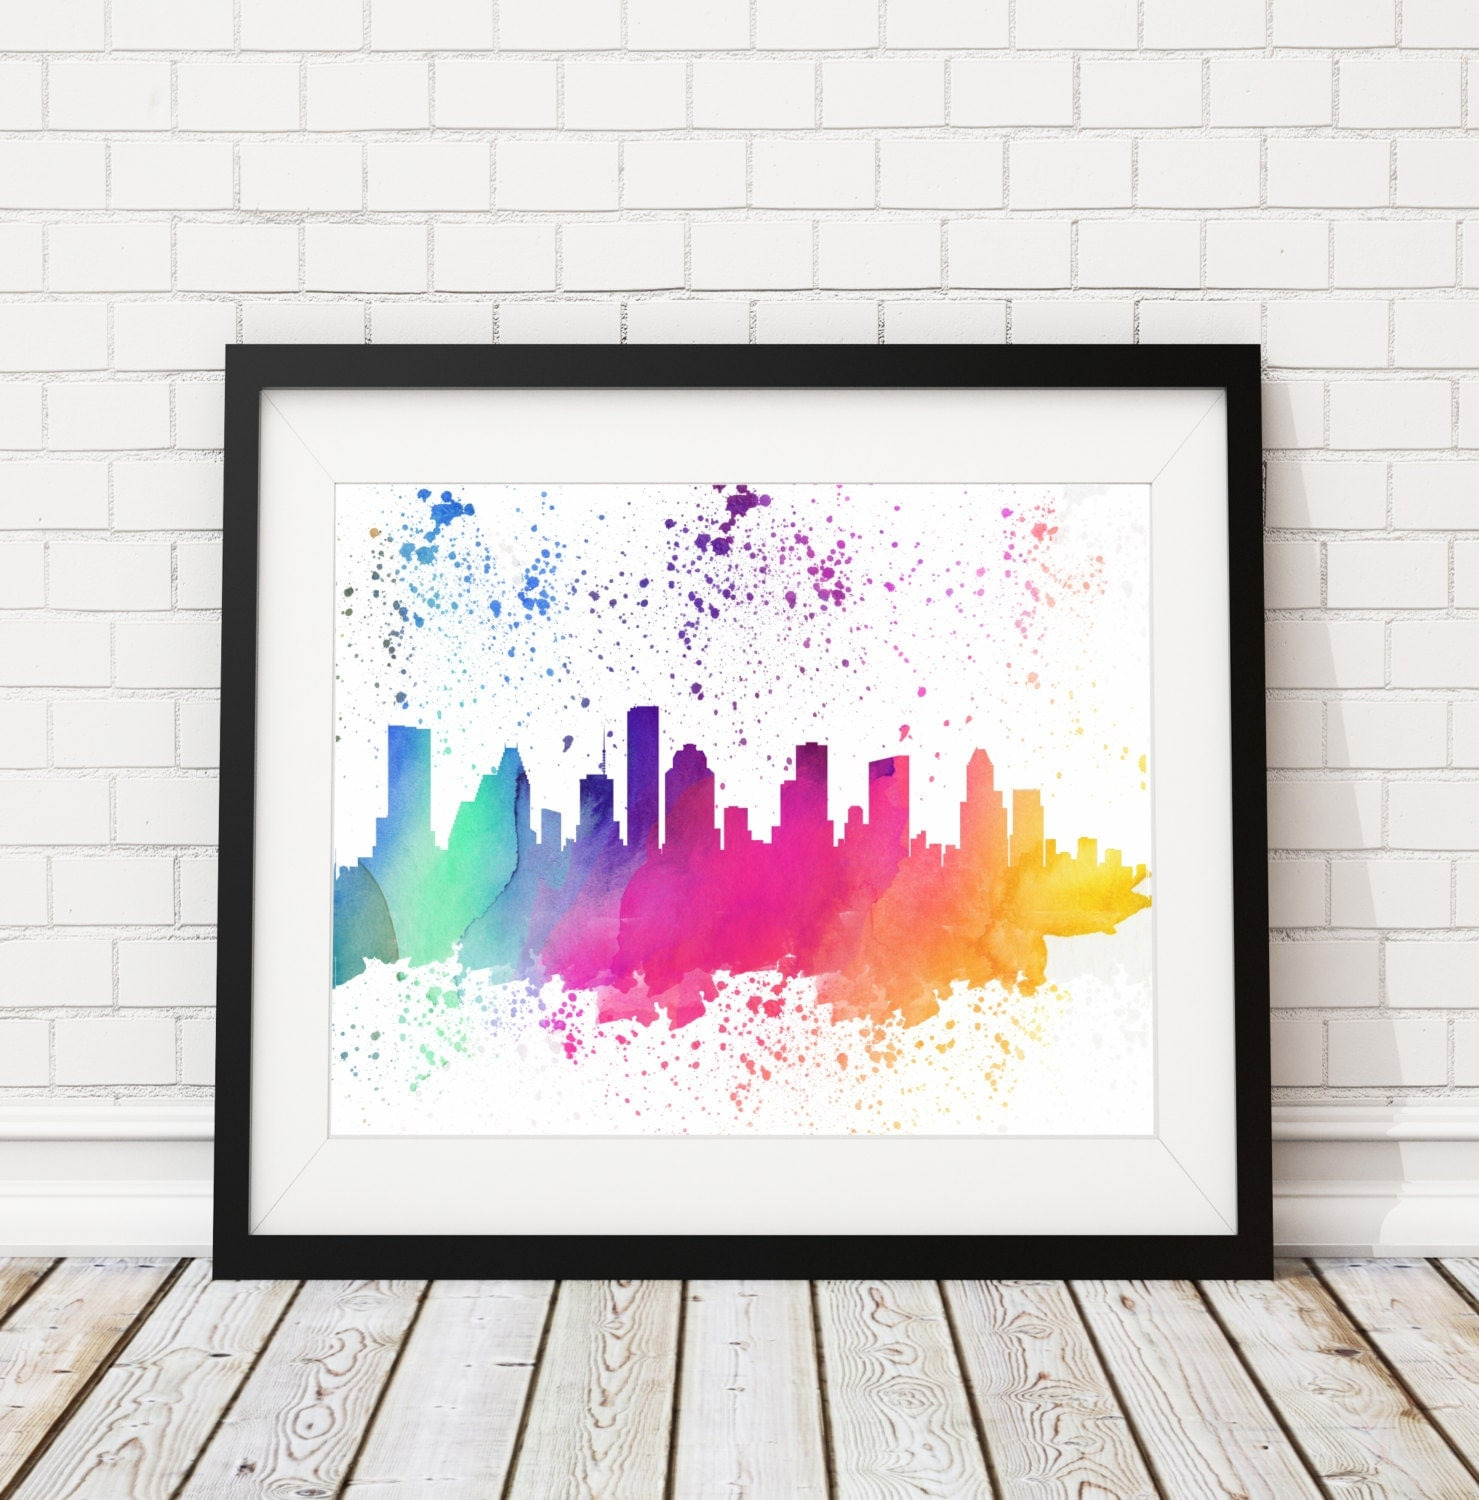 Watercolor art galleries in houston - Houston Skyline Watercolor Print Cityscape Print Houston Watercolor Art Houston Skyline Painting Watercolor Painting City Silhouette Art